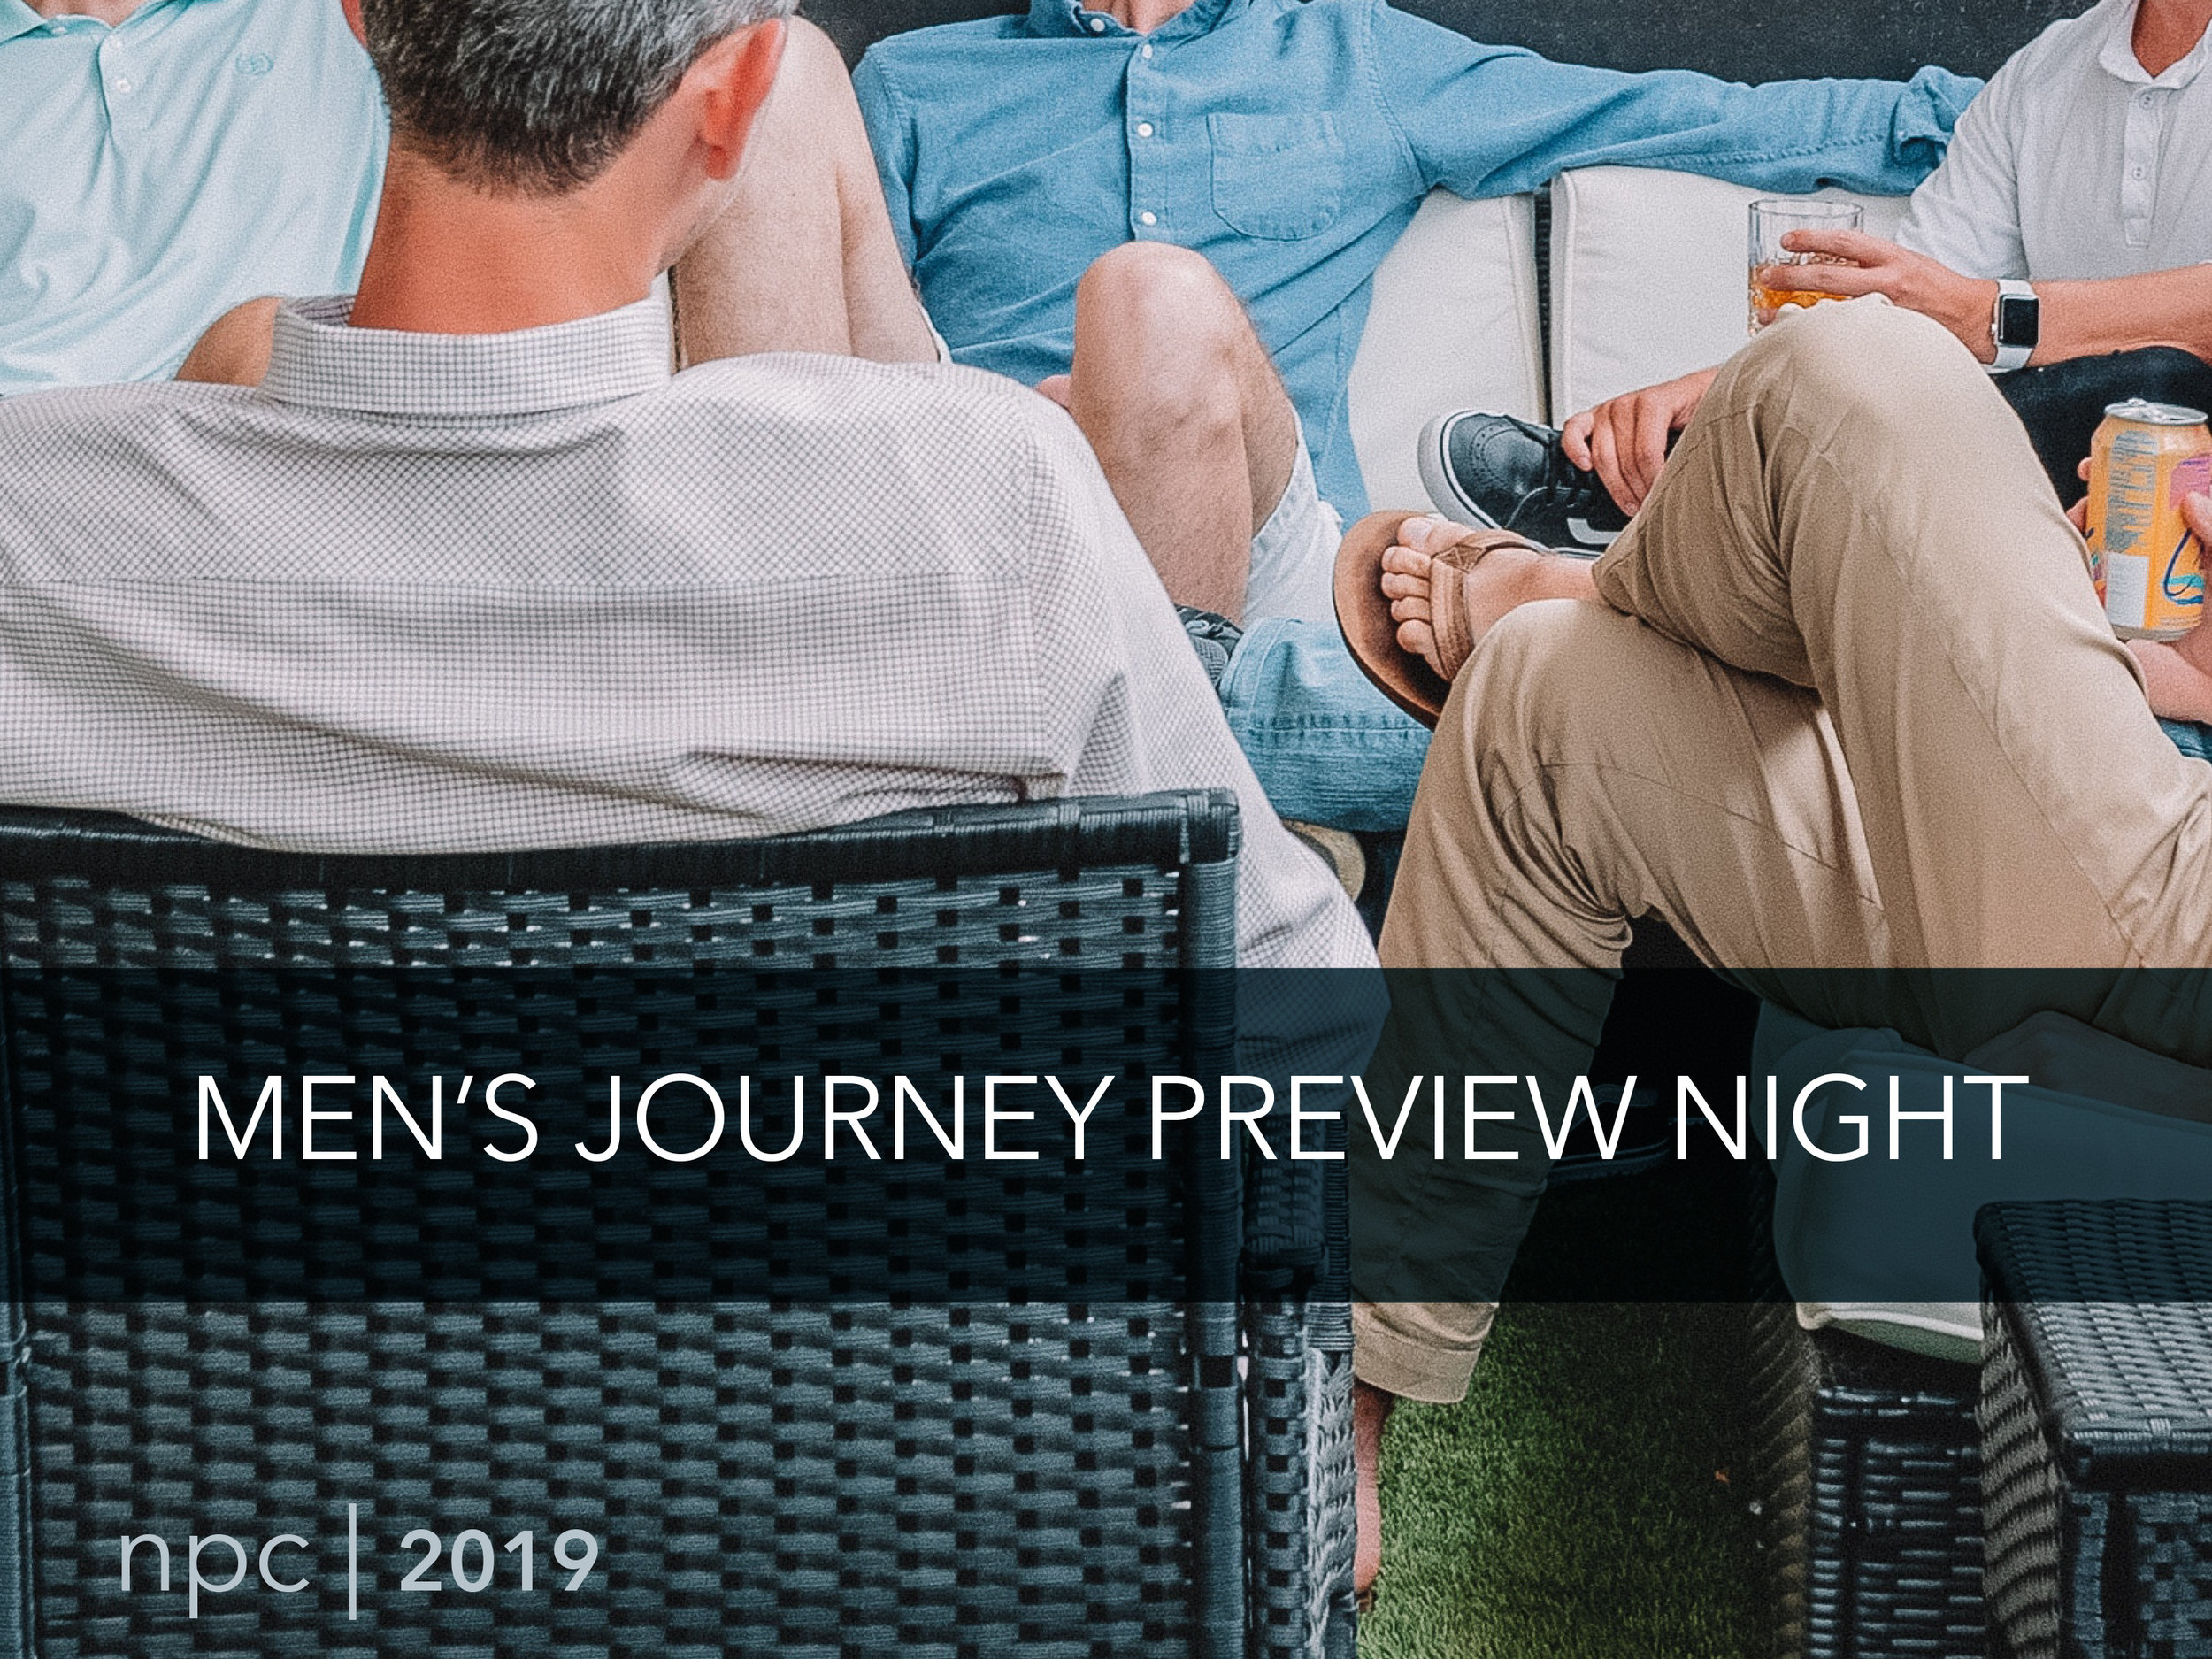 Men's Journey Preview Night_simple.jpg